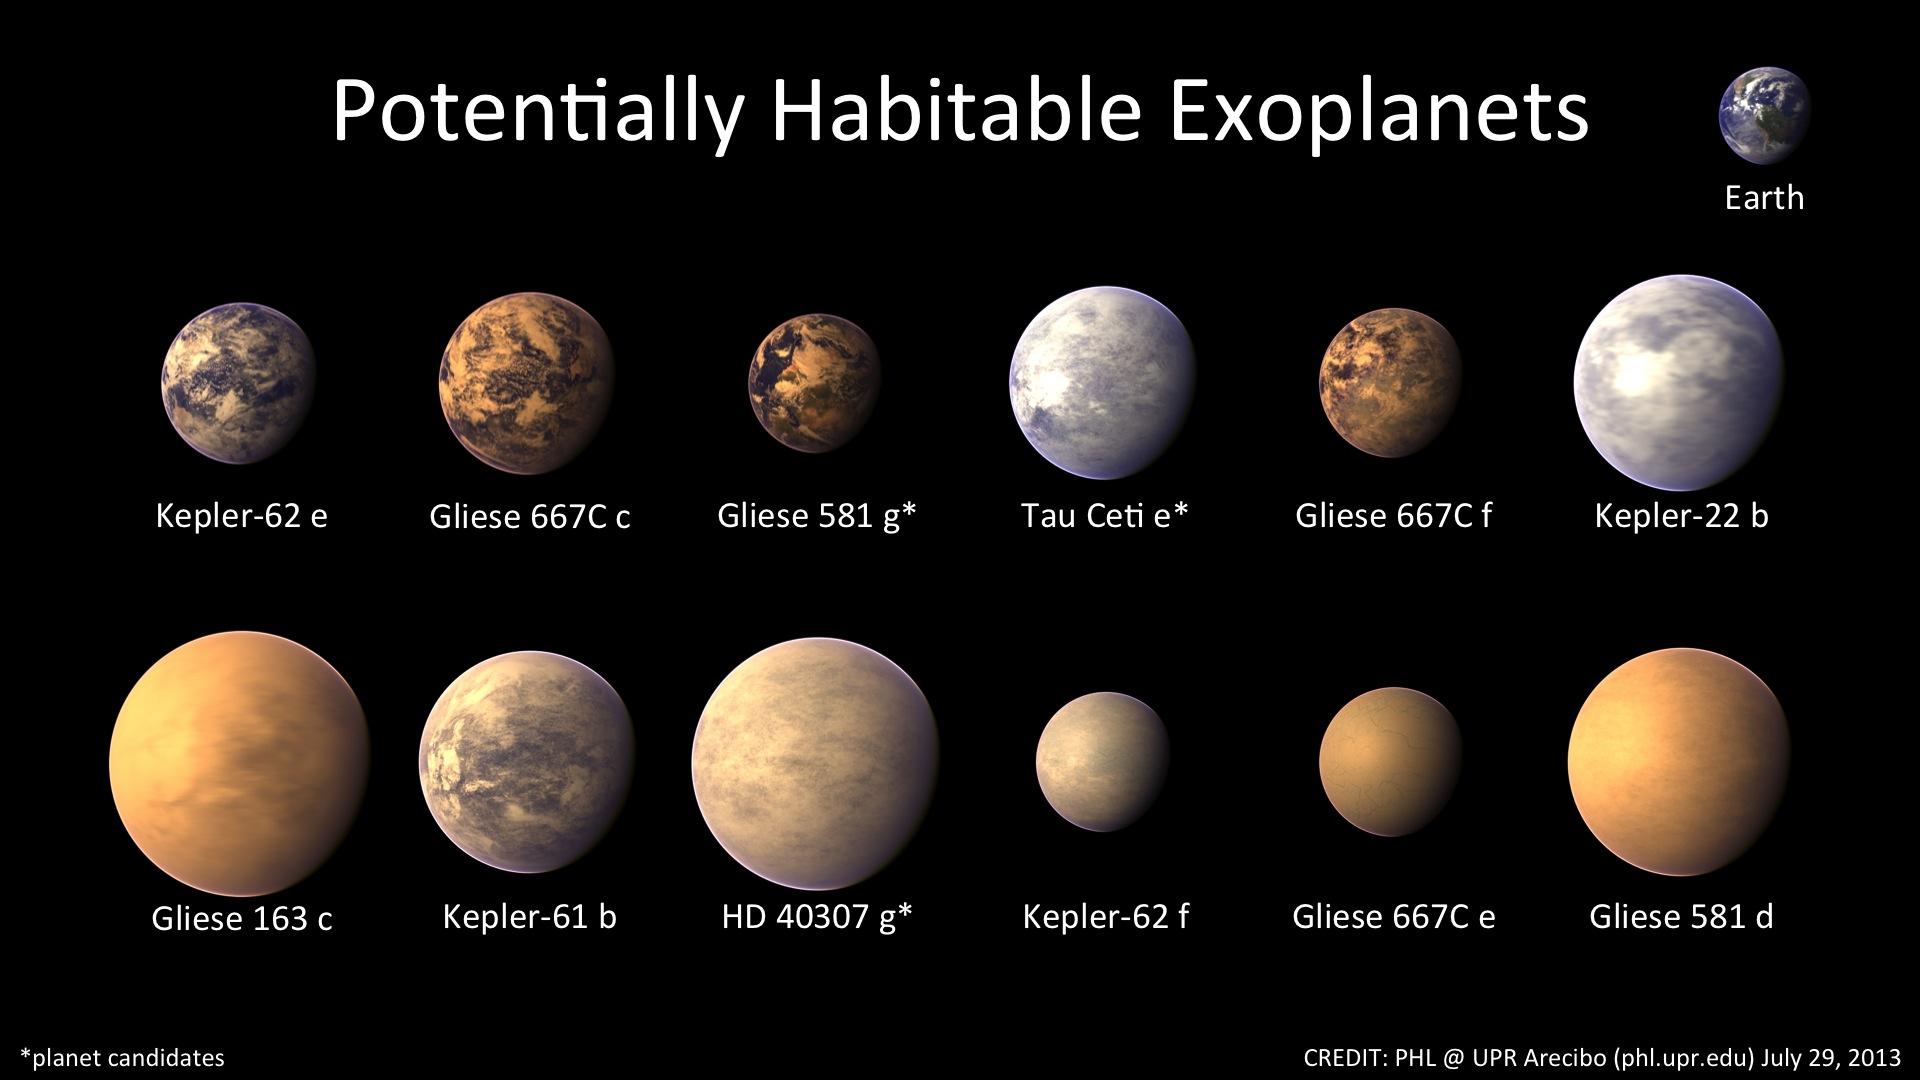 Names of planets